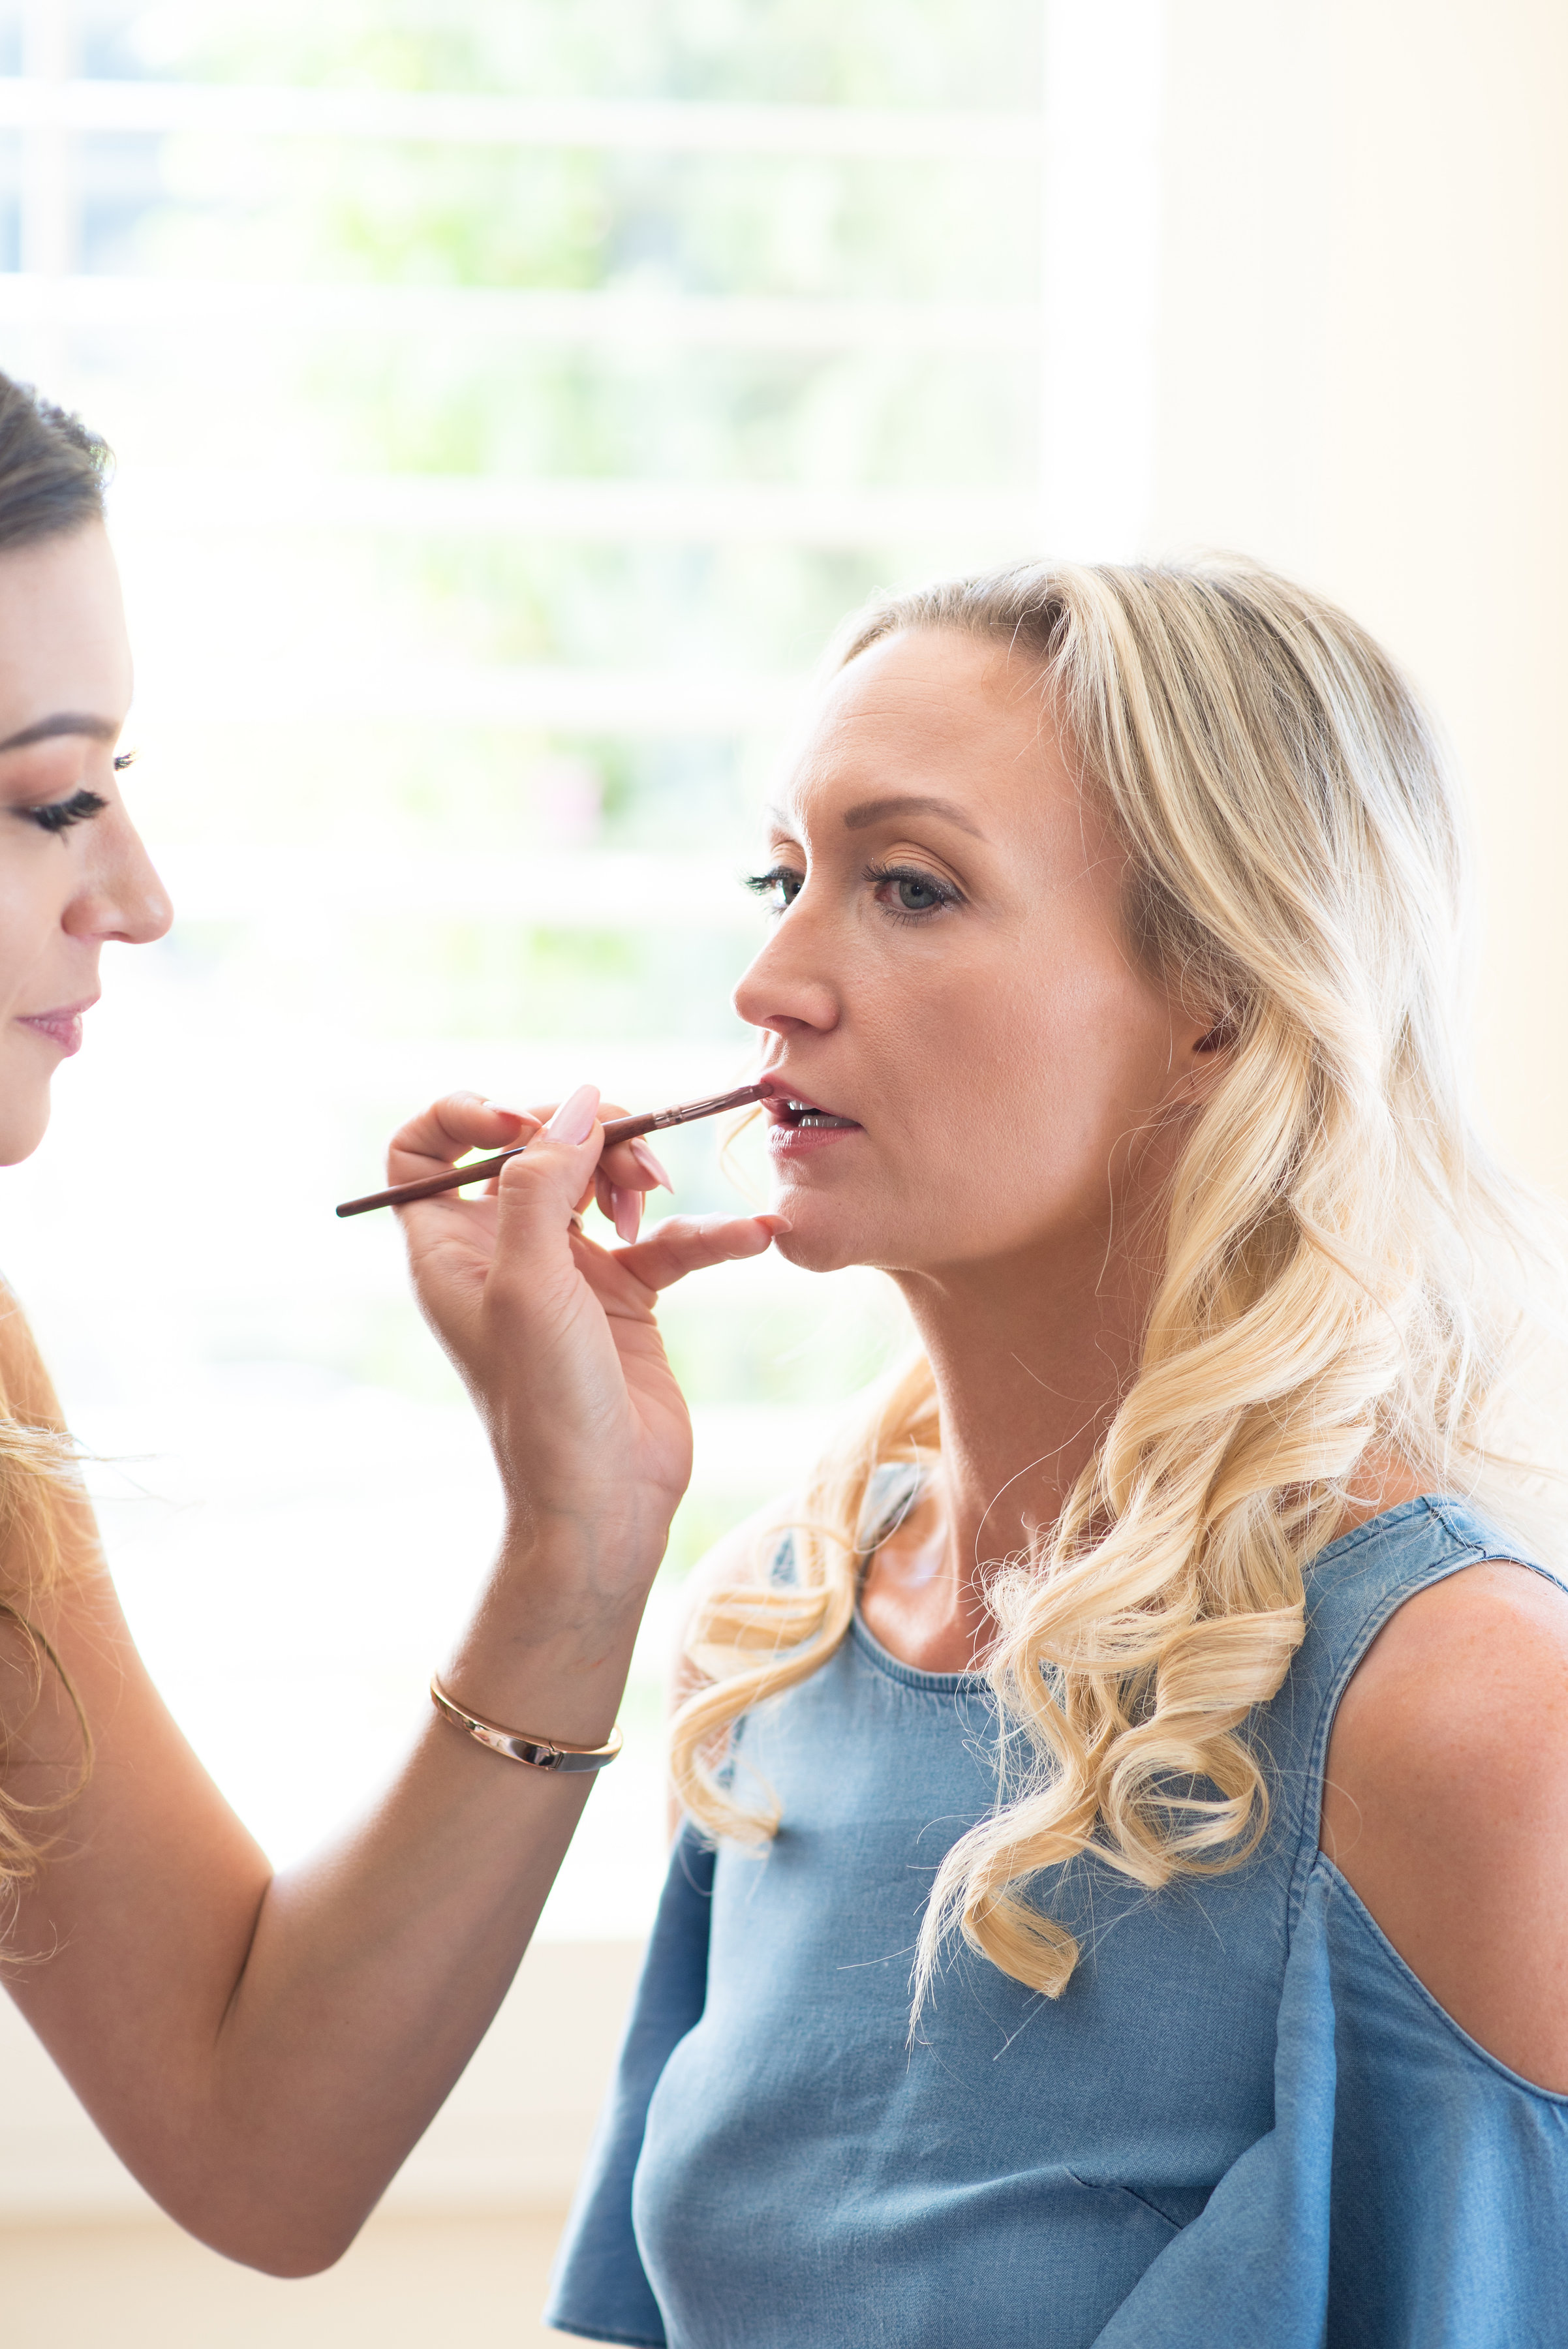 Using a very small lip brush on the bride-to-be, Stephanie for her lips. Precision is key.